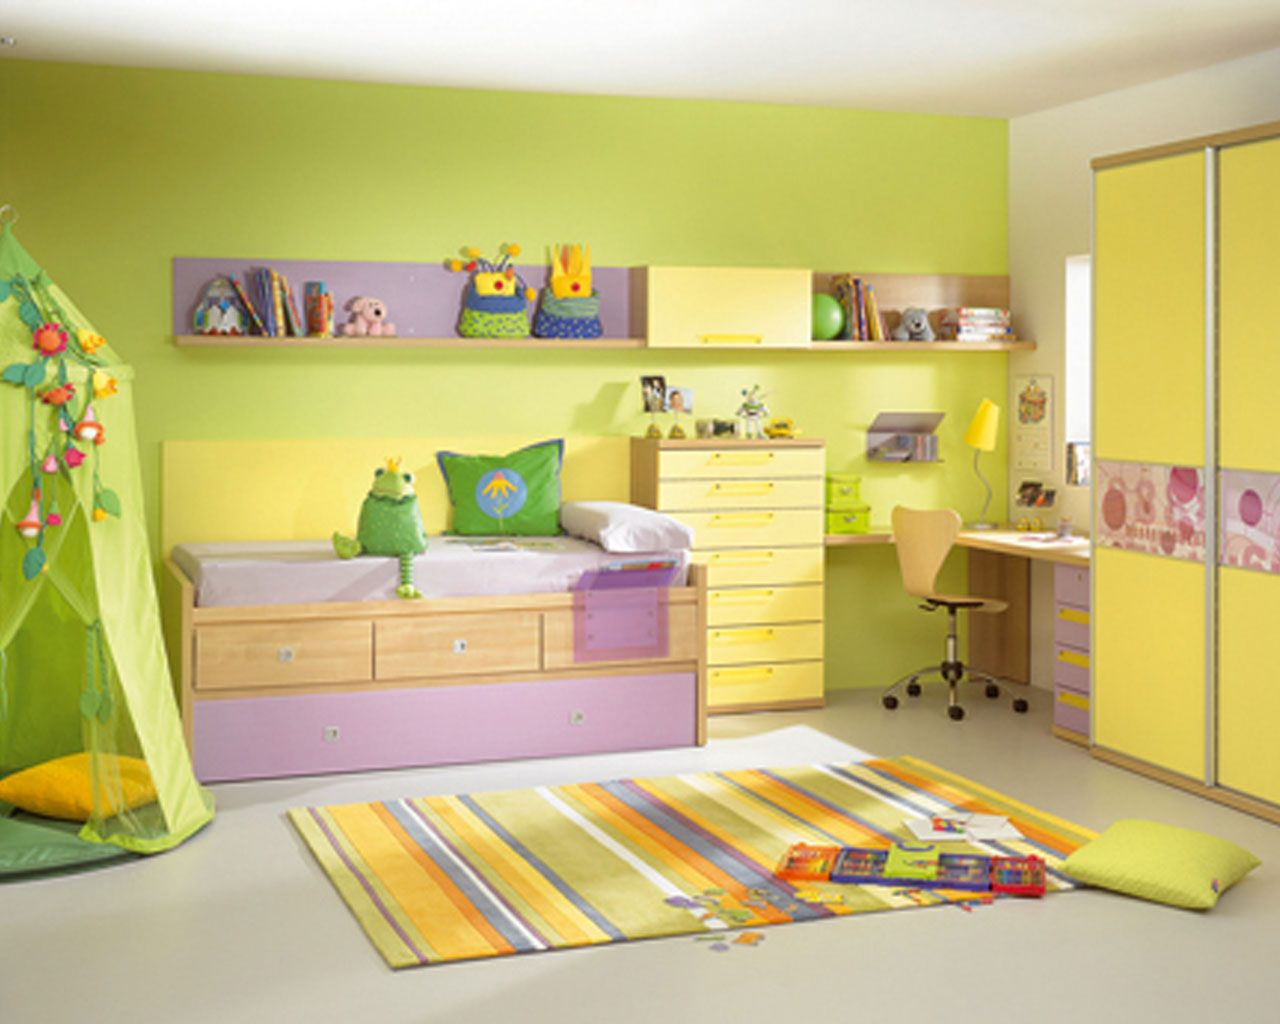 Lime green and white themed kids room paint ideas with for Bedroom ideas for 3 beds